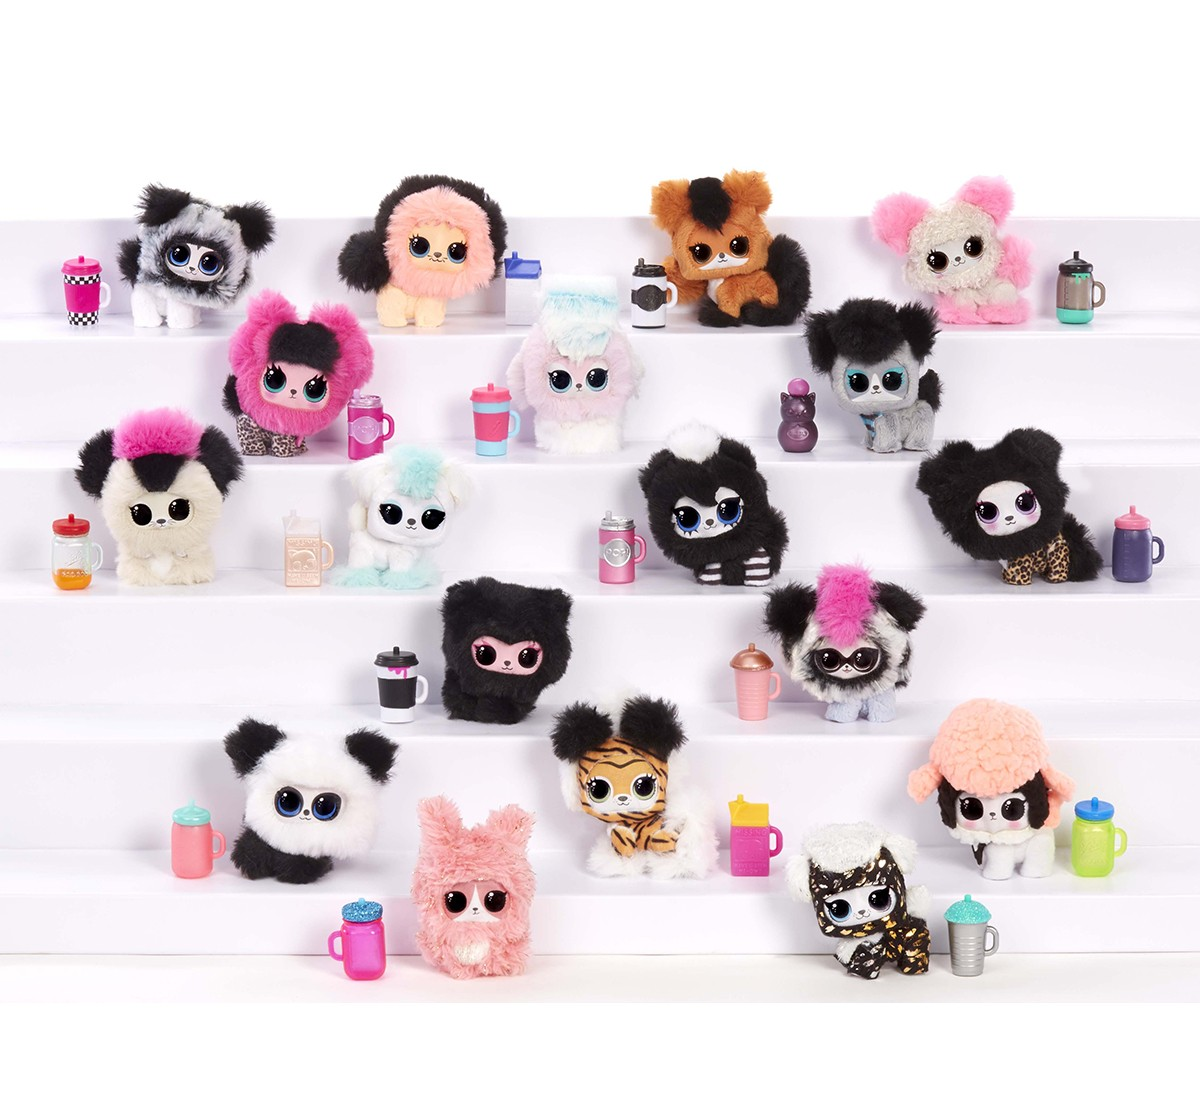 Lol Surprise Fluffy Pets, Collectible Dolls for Girls age 3Y+ (Assorted)